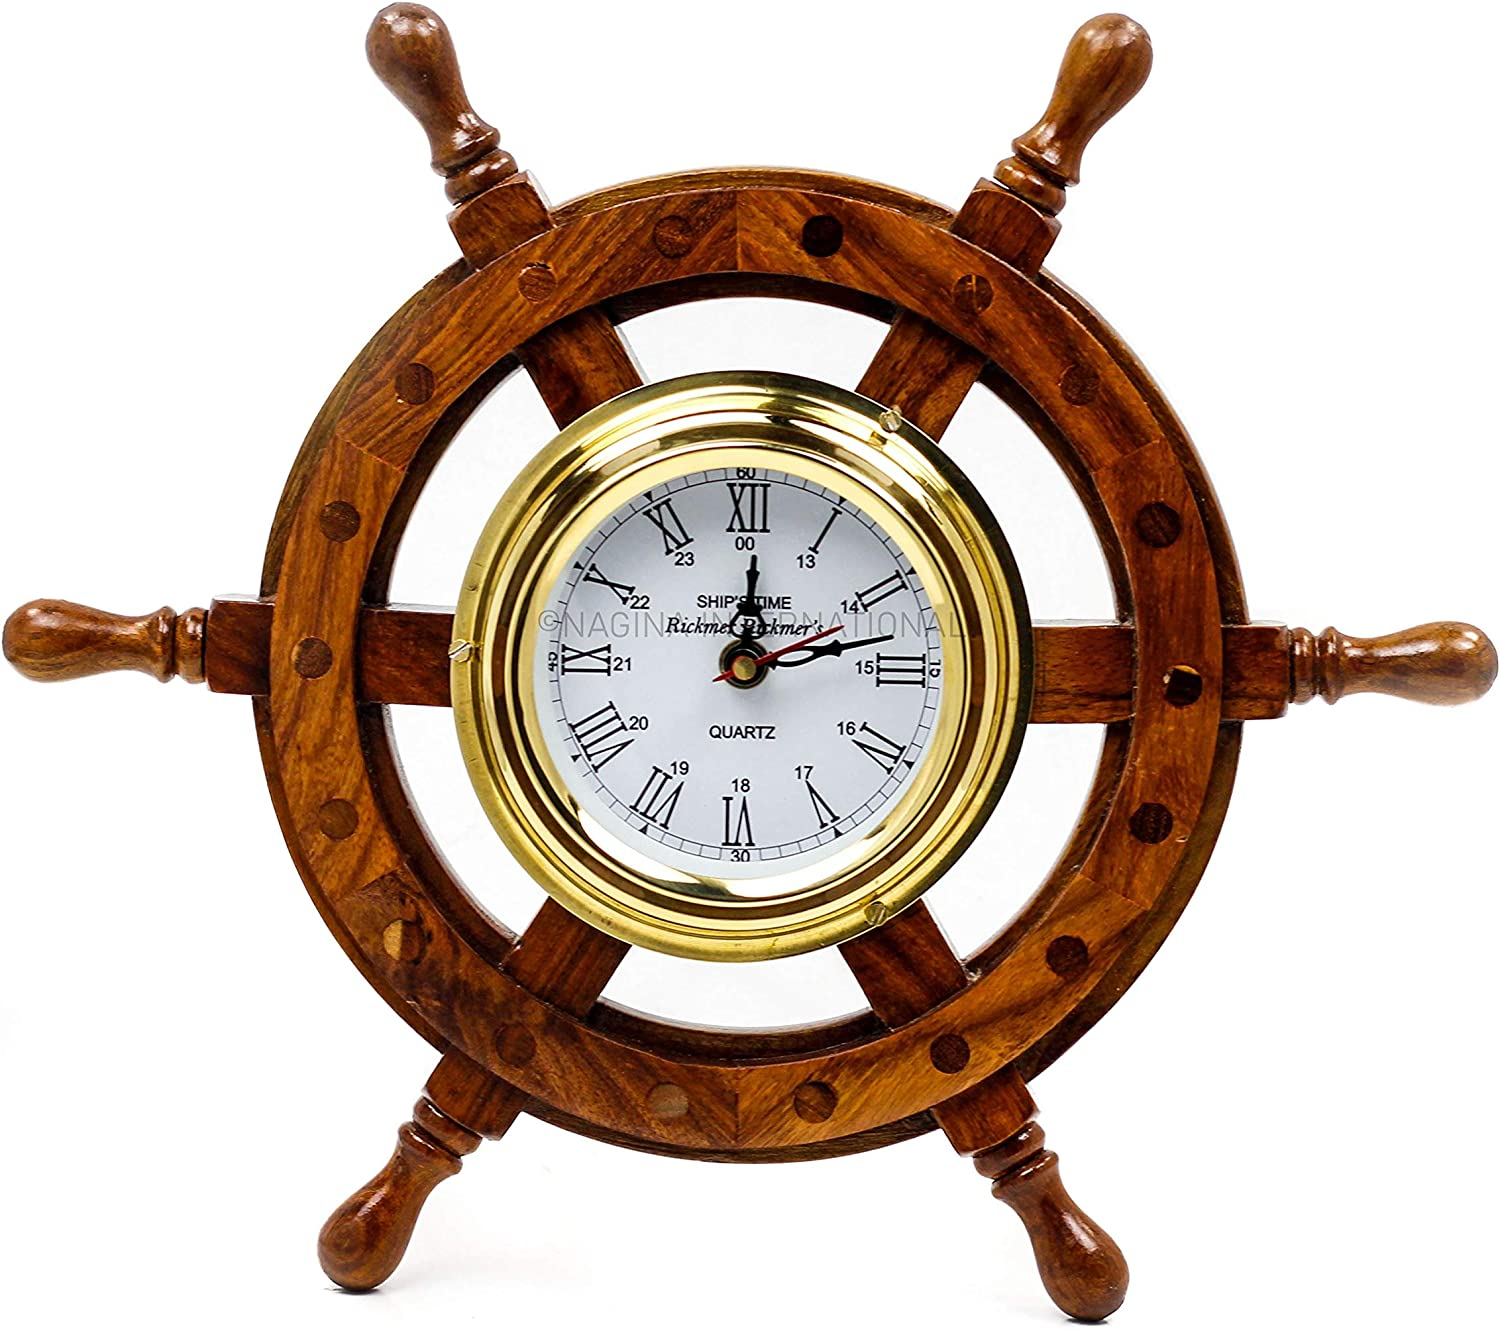 Nagina International Premium Nautical Hand Crafted Brass Time's Clock Wooden Ship Wheel | Pirate's Wall Decor | Home Decorative Gifts (12 Inches)